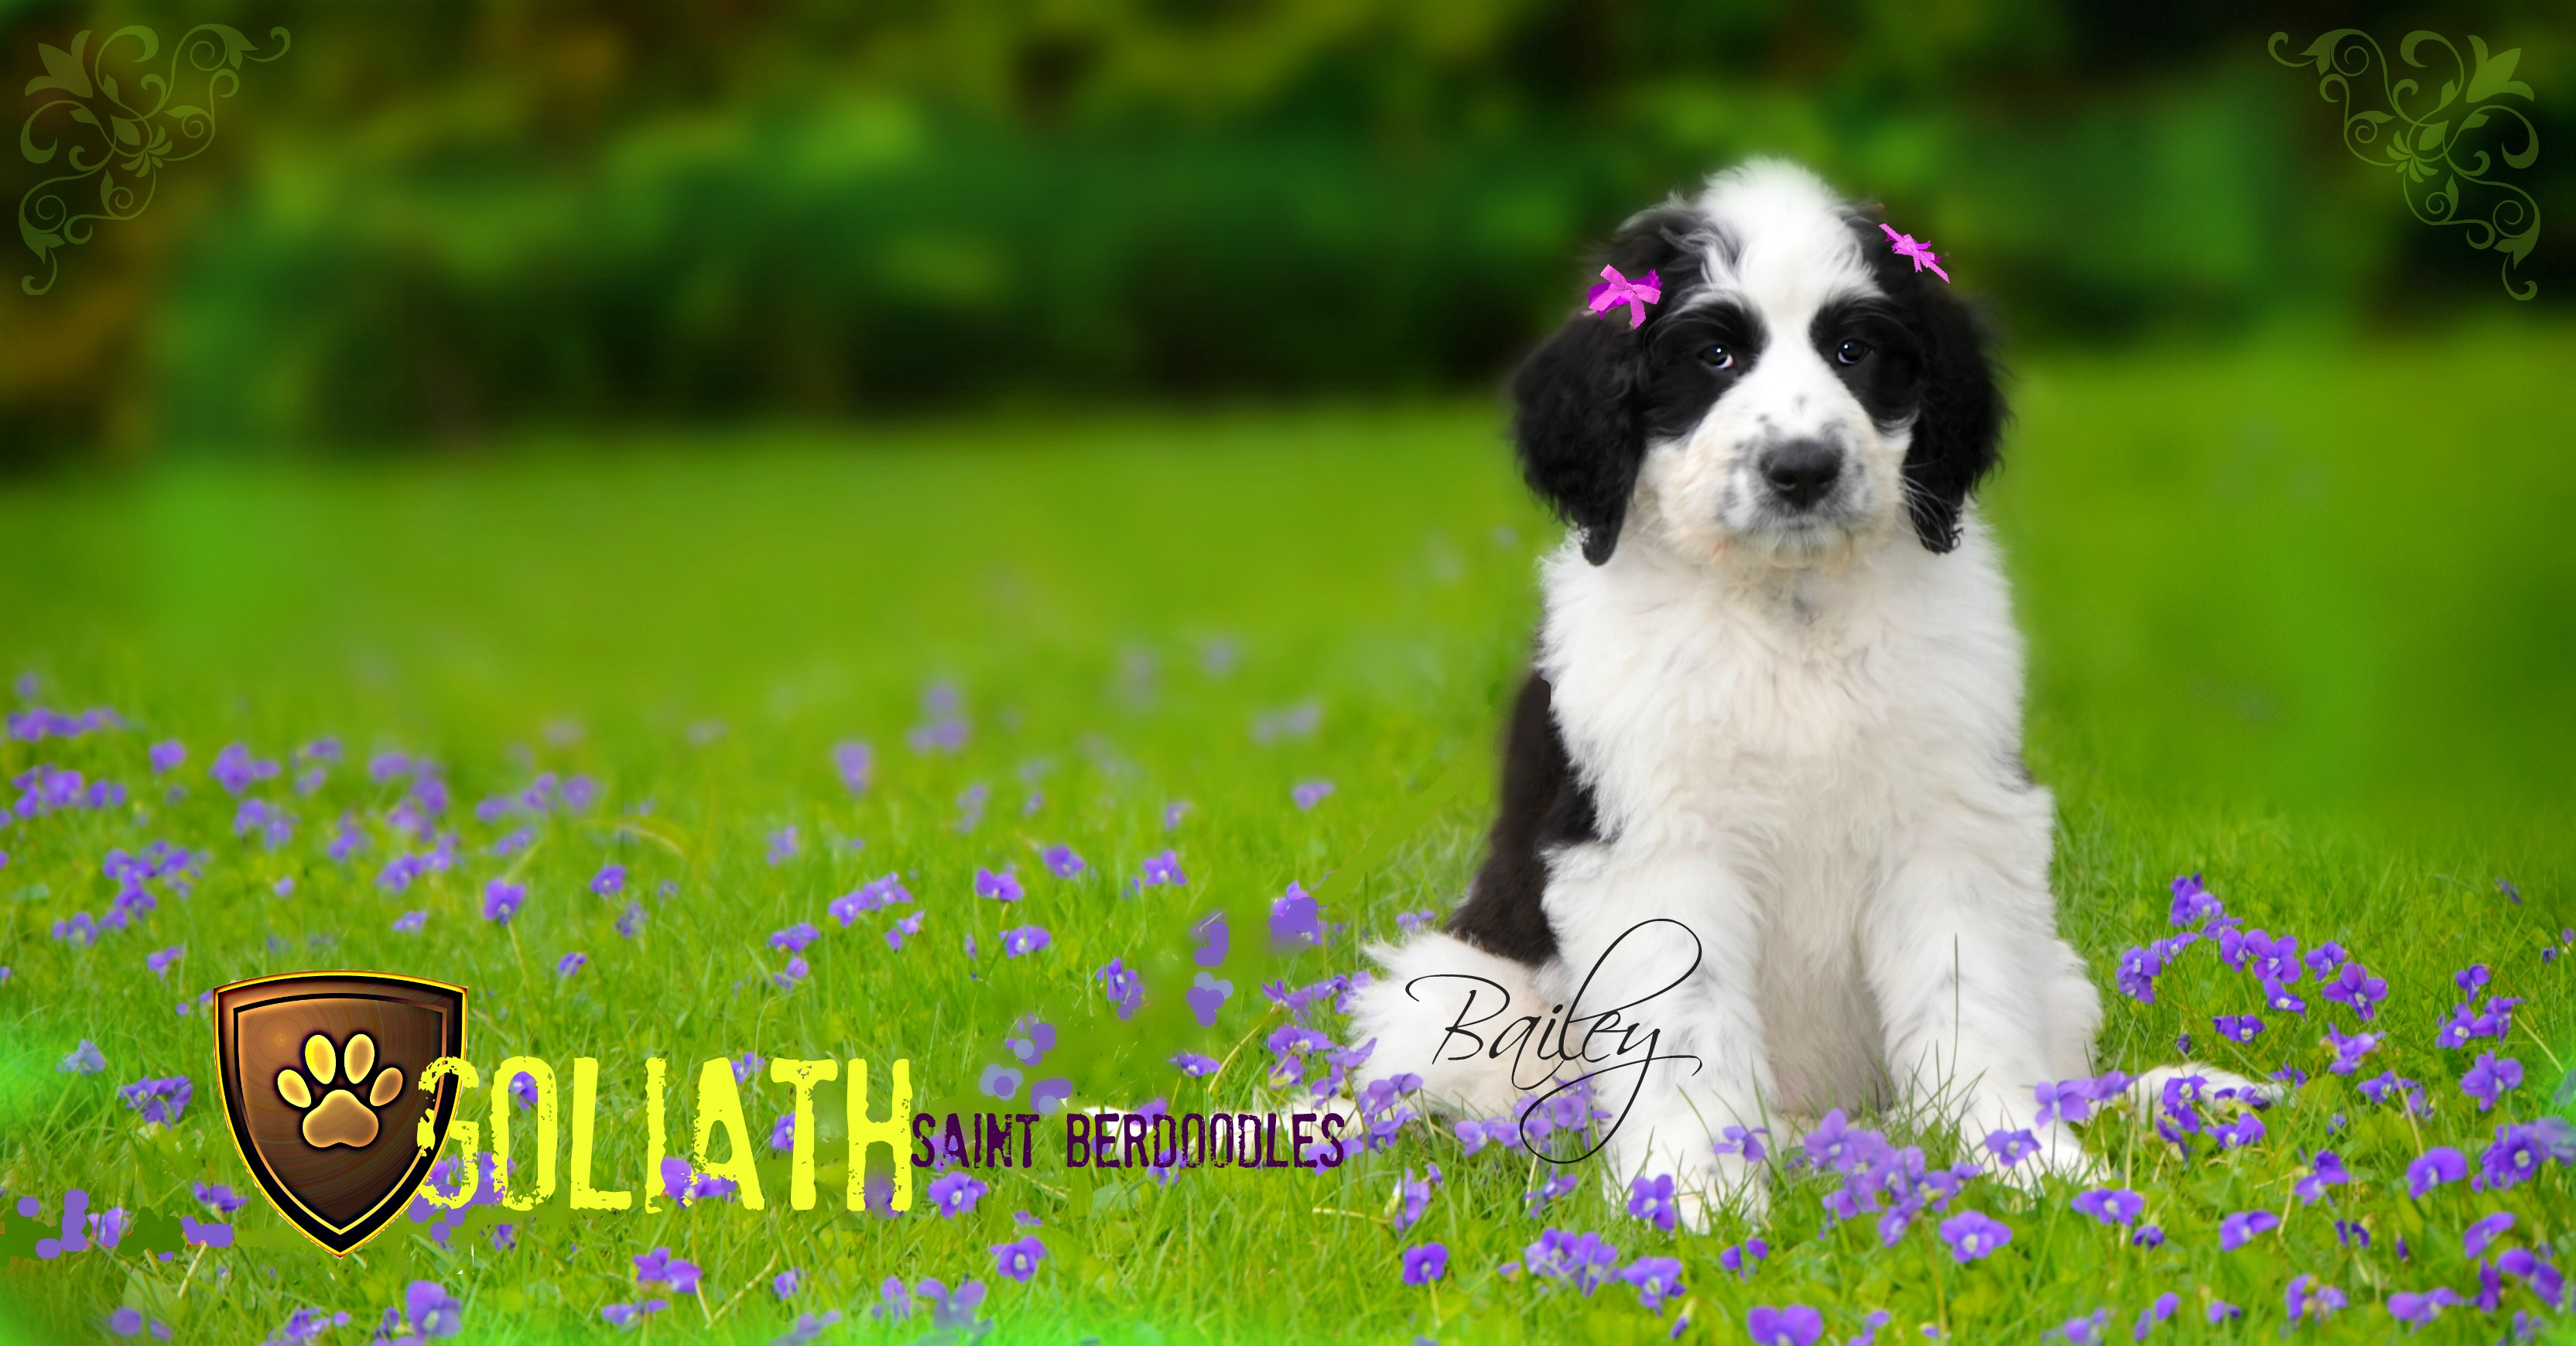 Goliath Saint Berdoodle sitting in a field of flowers